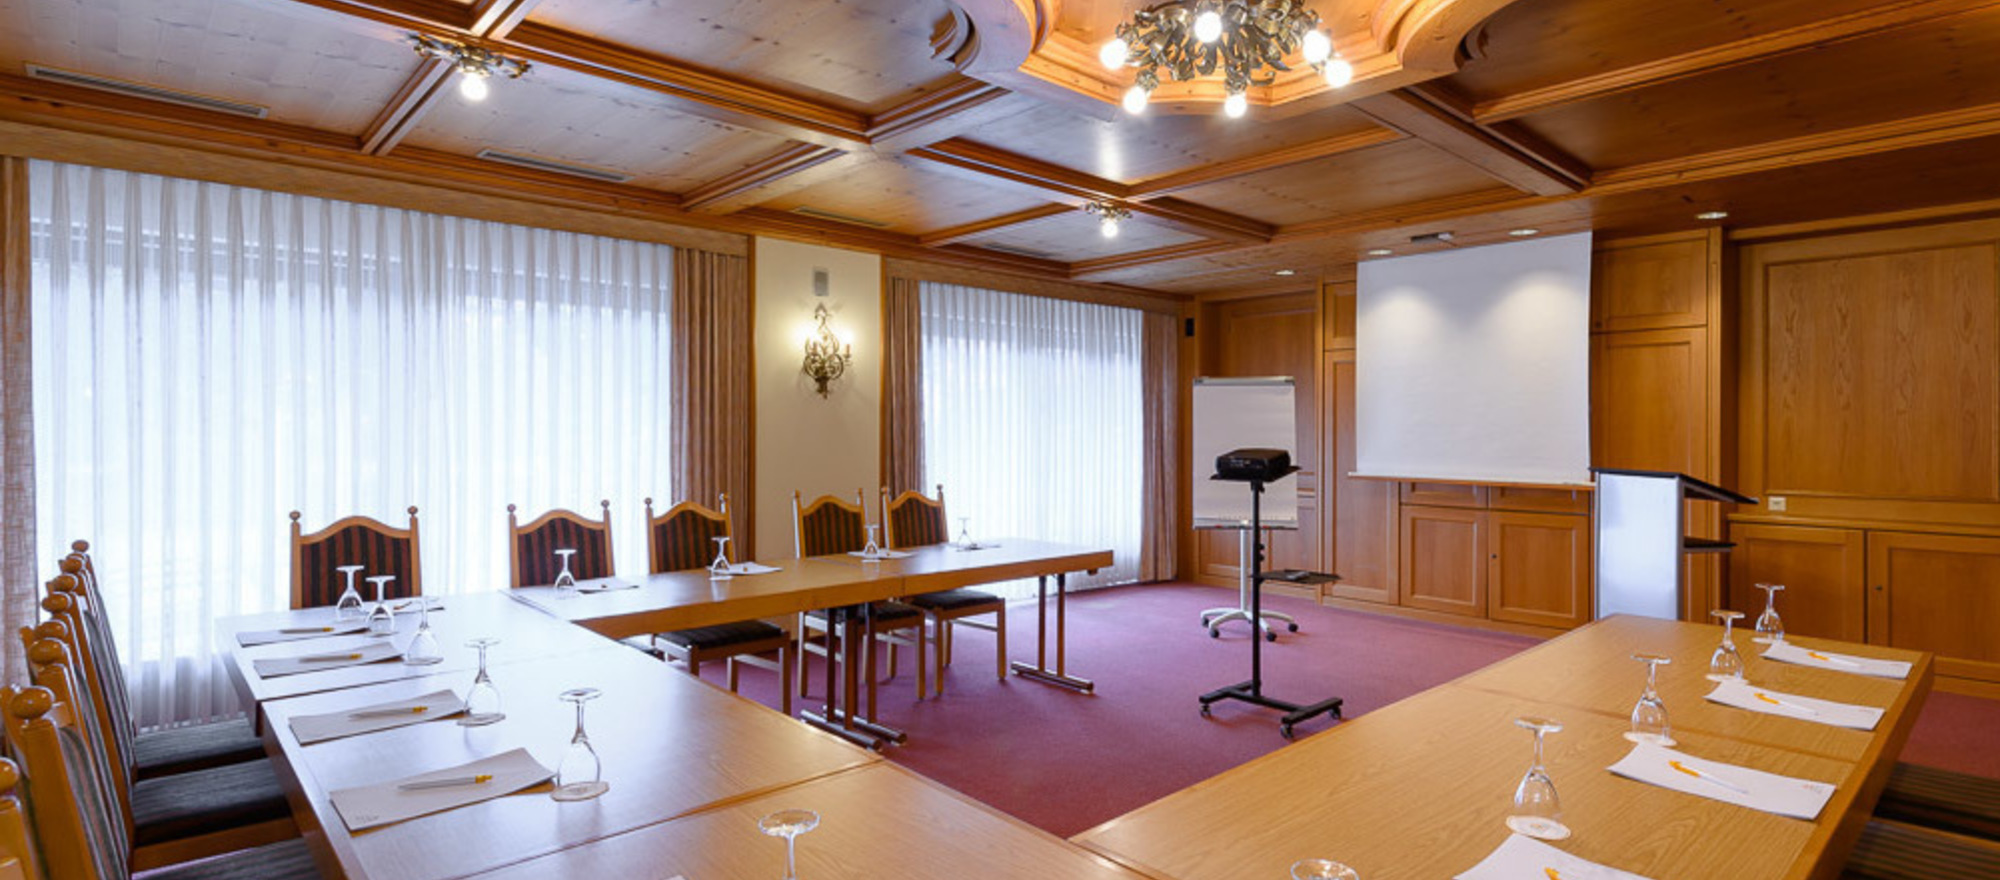 Ringhotel Pflug in Oberkirch meeting room